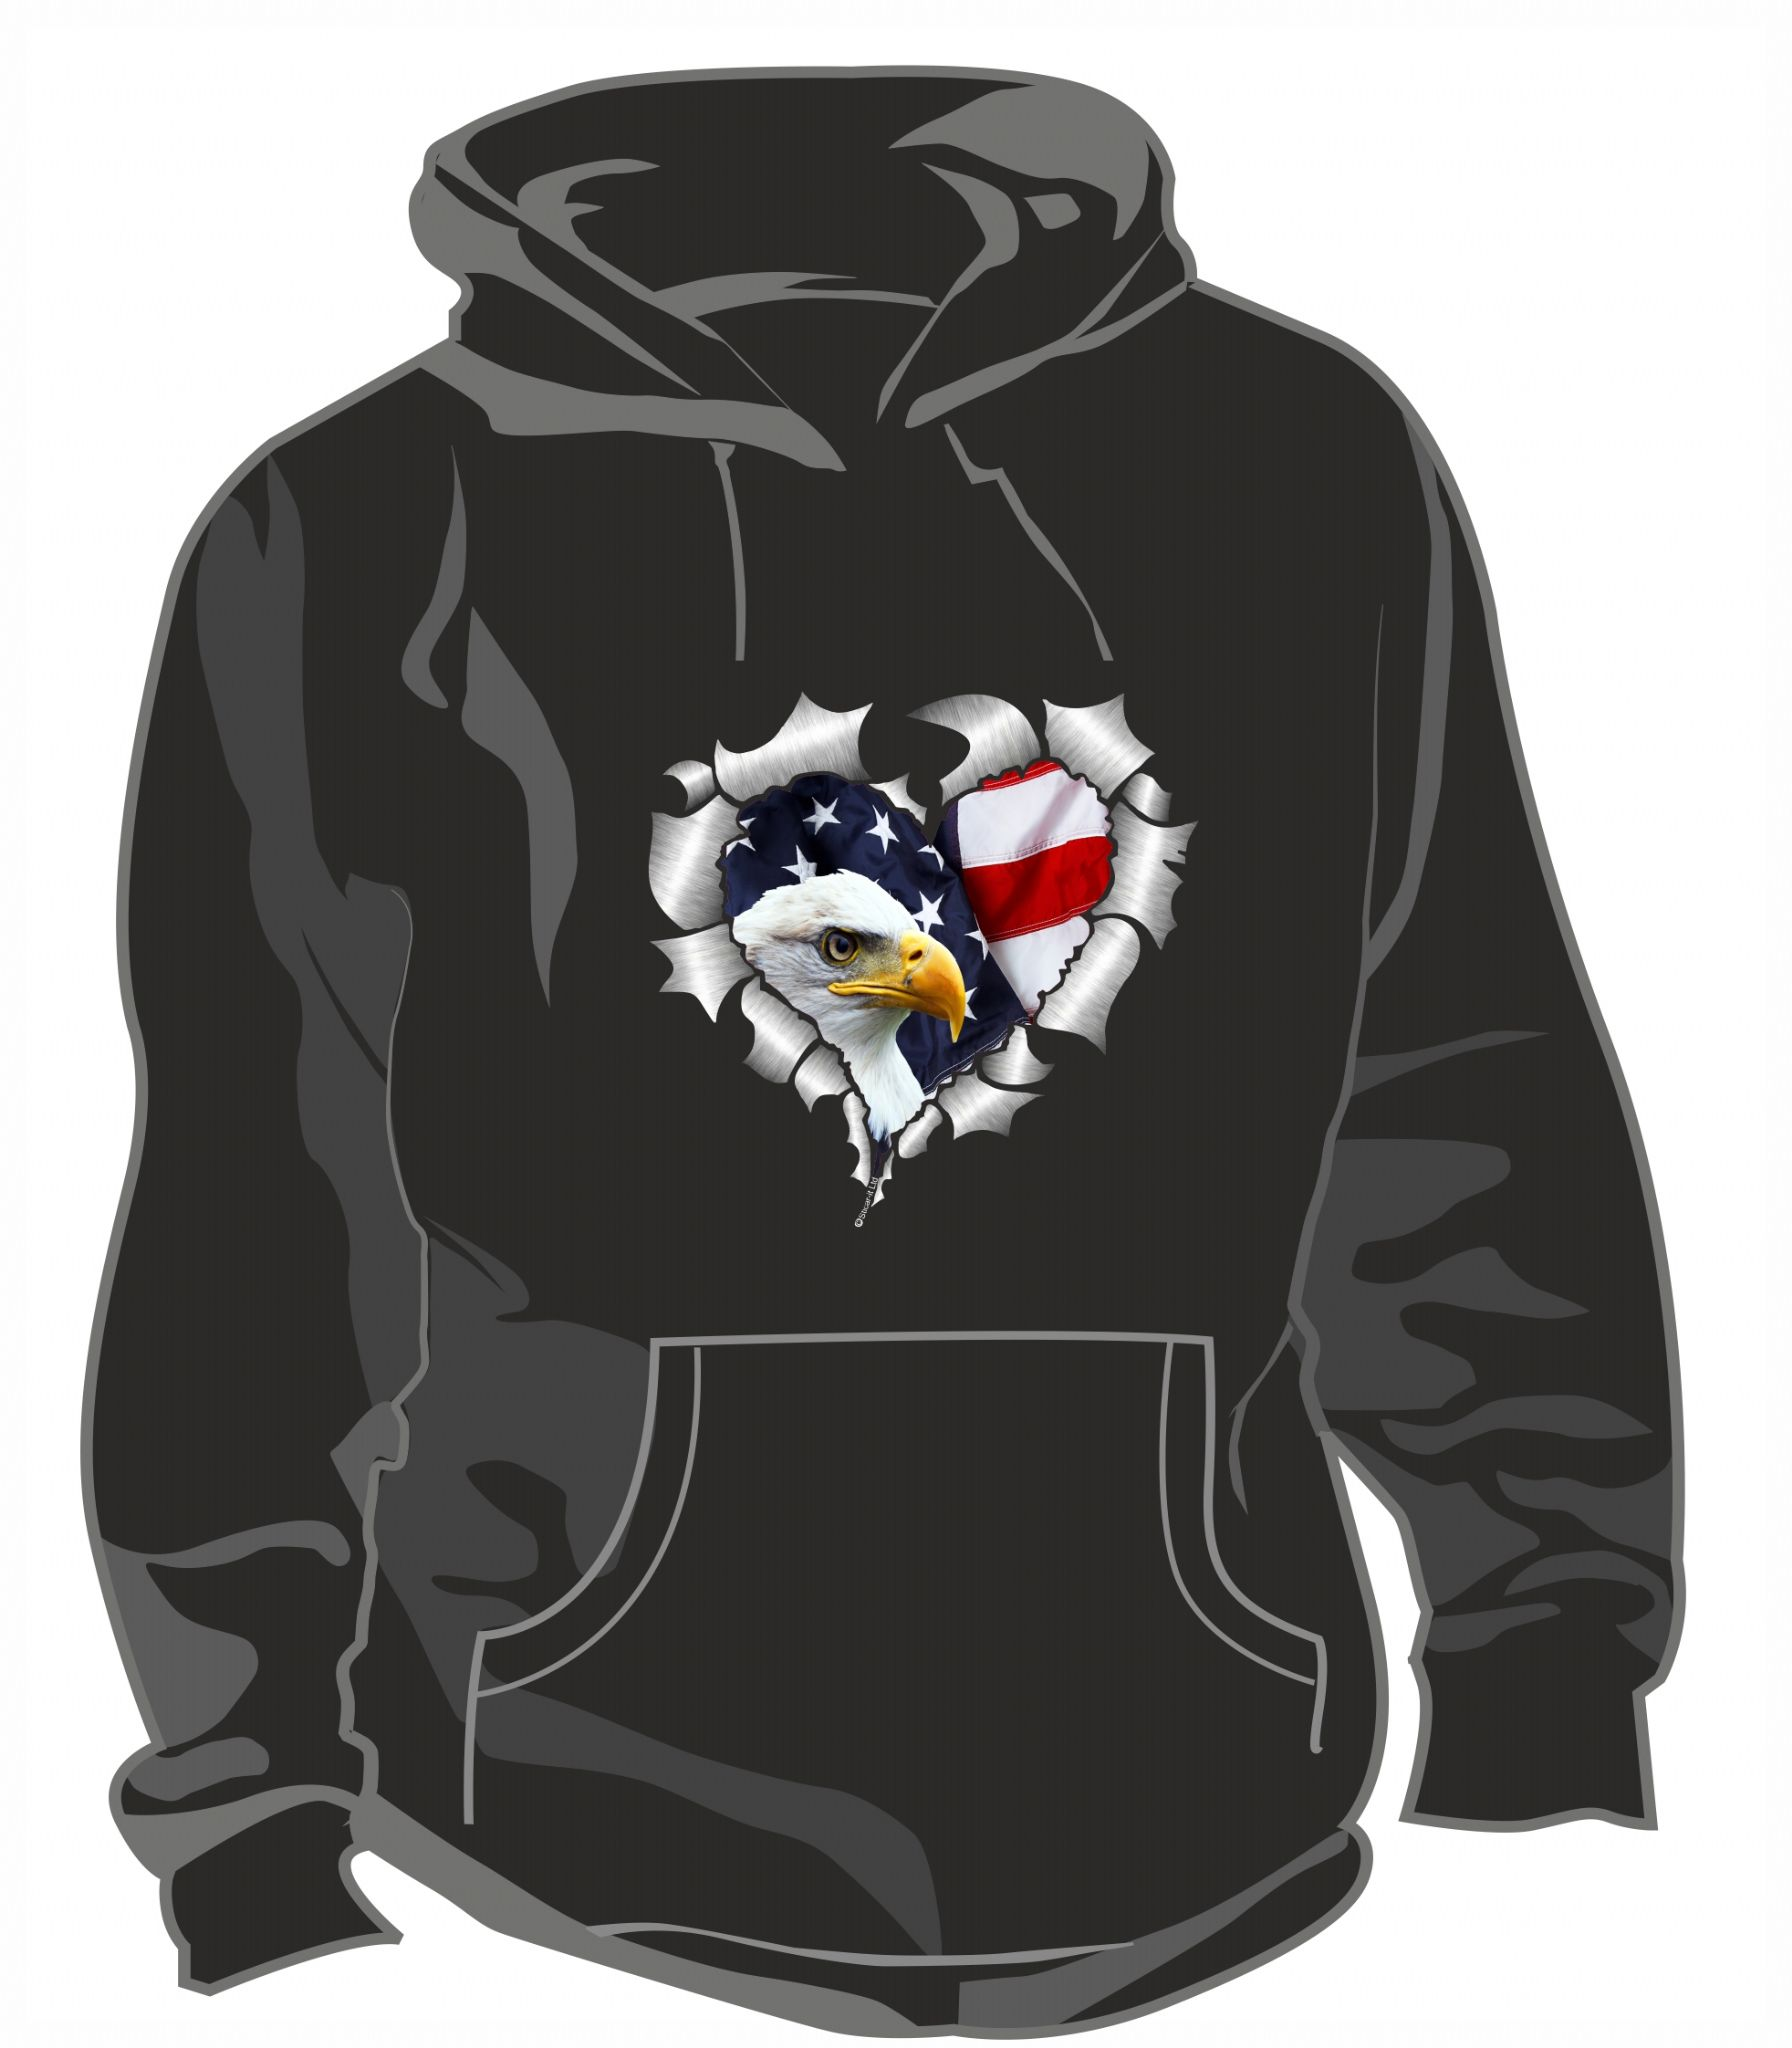 ceba71d7349 RIPPED METAL HEART Design With American Bald Eagle   US Flag ...